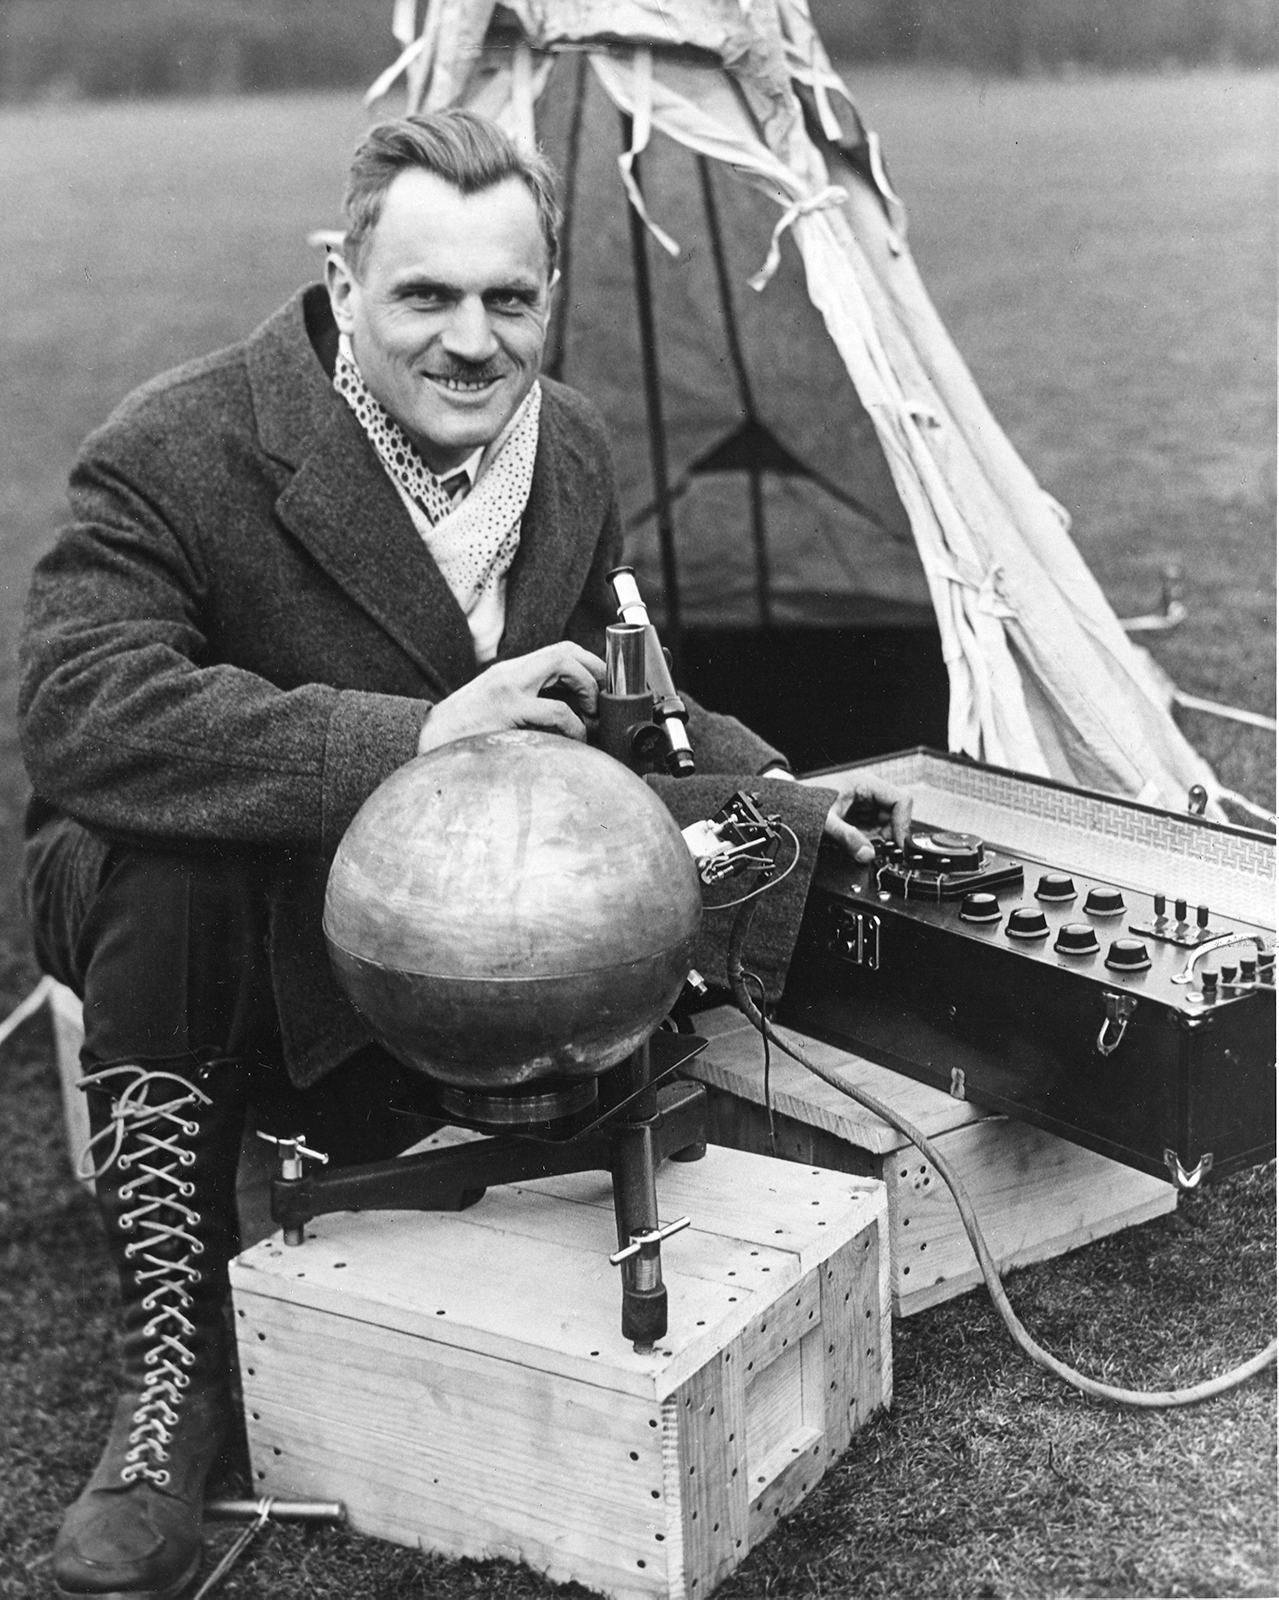 Man outdoor with scientific instruments